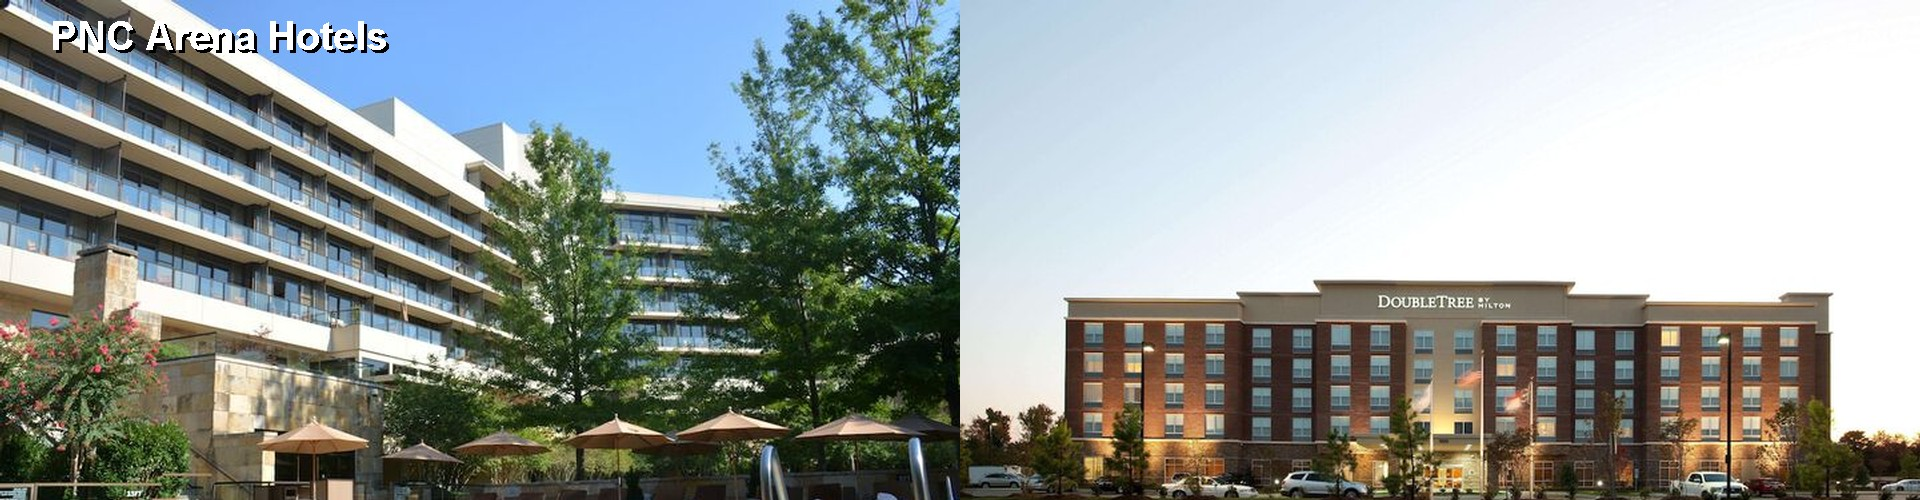 5 Best Hotels near PNC Arena